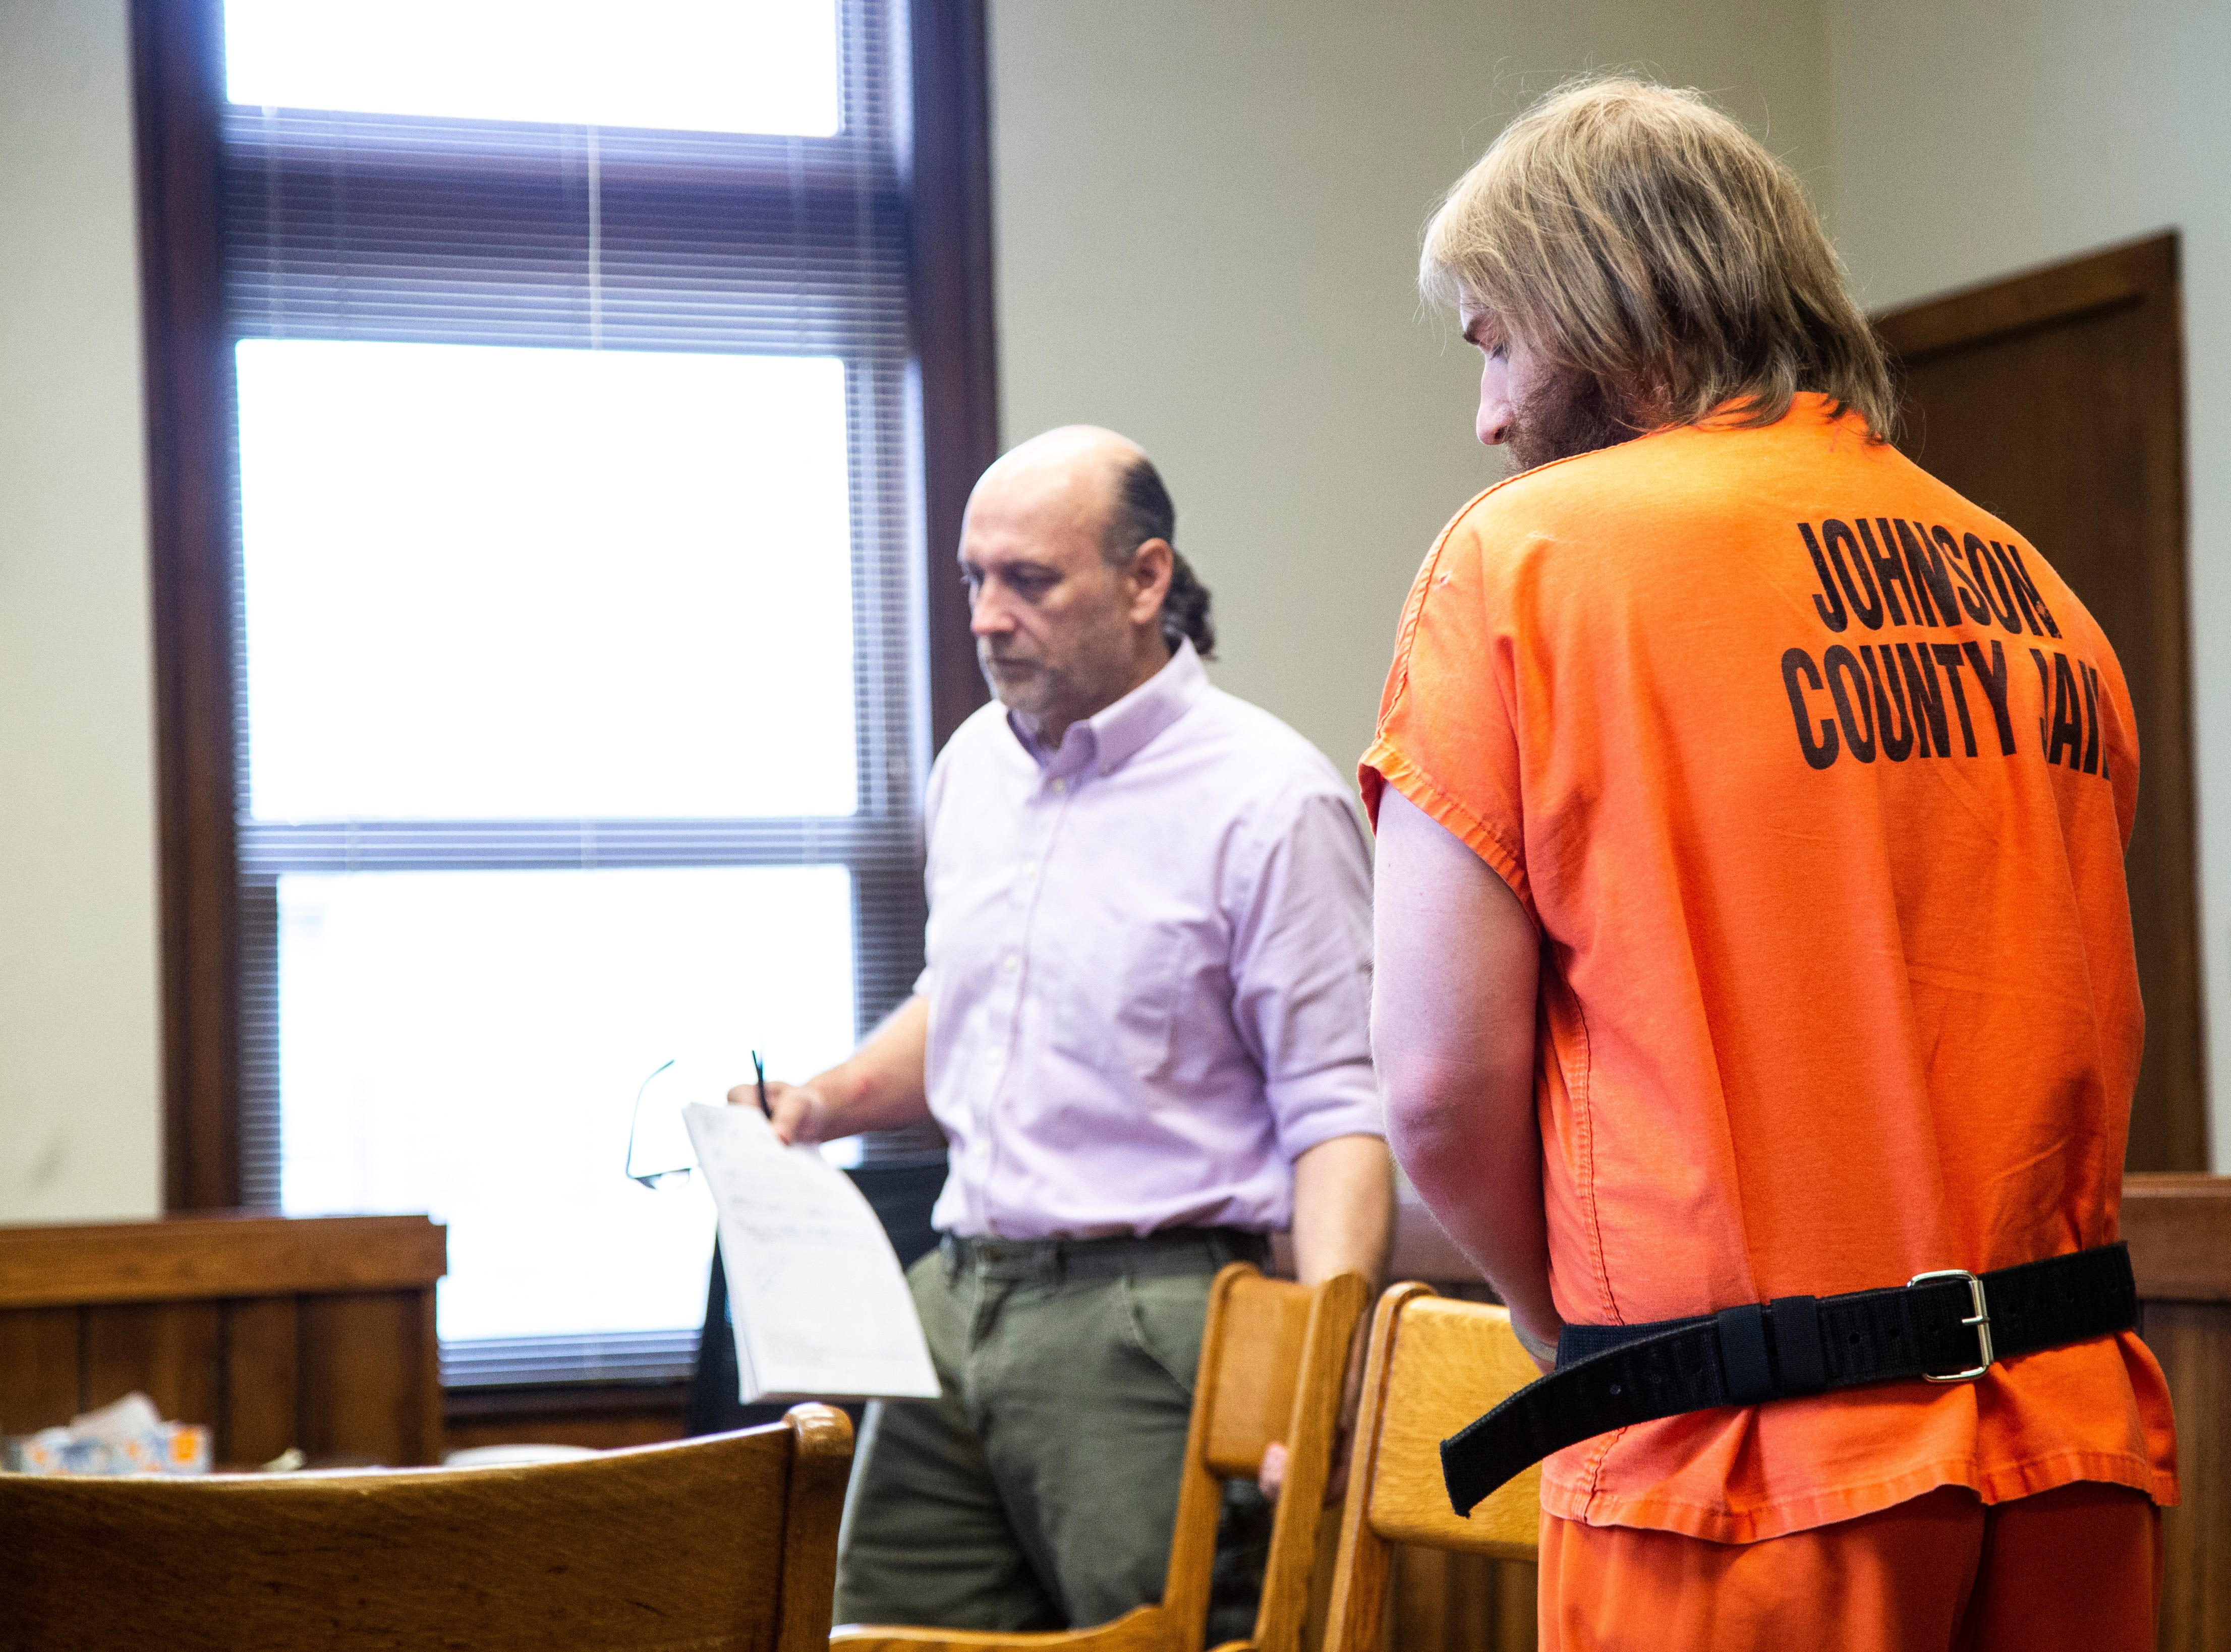 Flannery Kennedy-Meier arrives during his sentencing hearing for attempted murder, Tuesday, May 14, 2019, at the Johnson County Courthouse in Iowa City, Iowa.